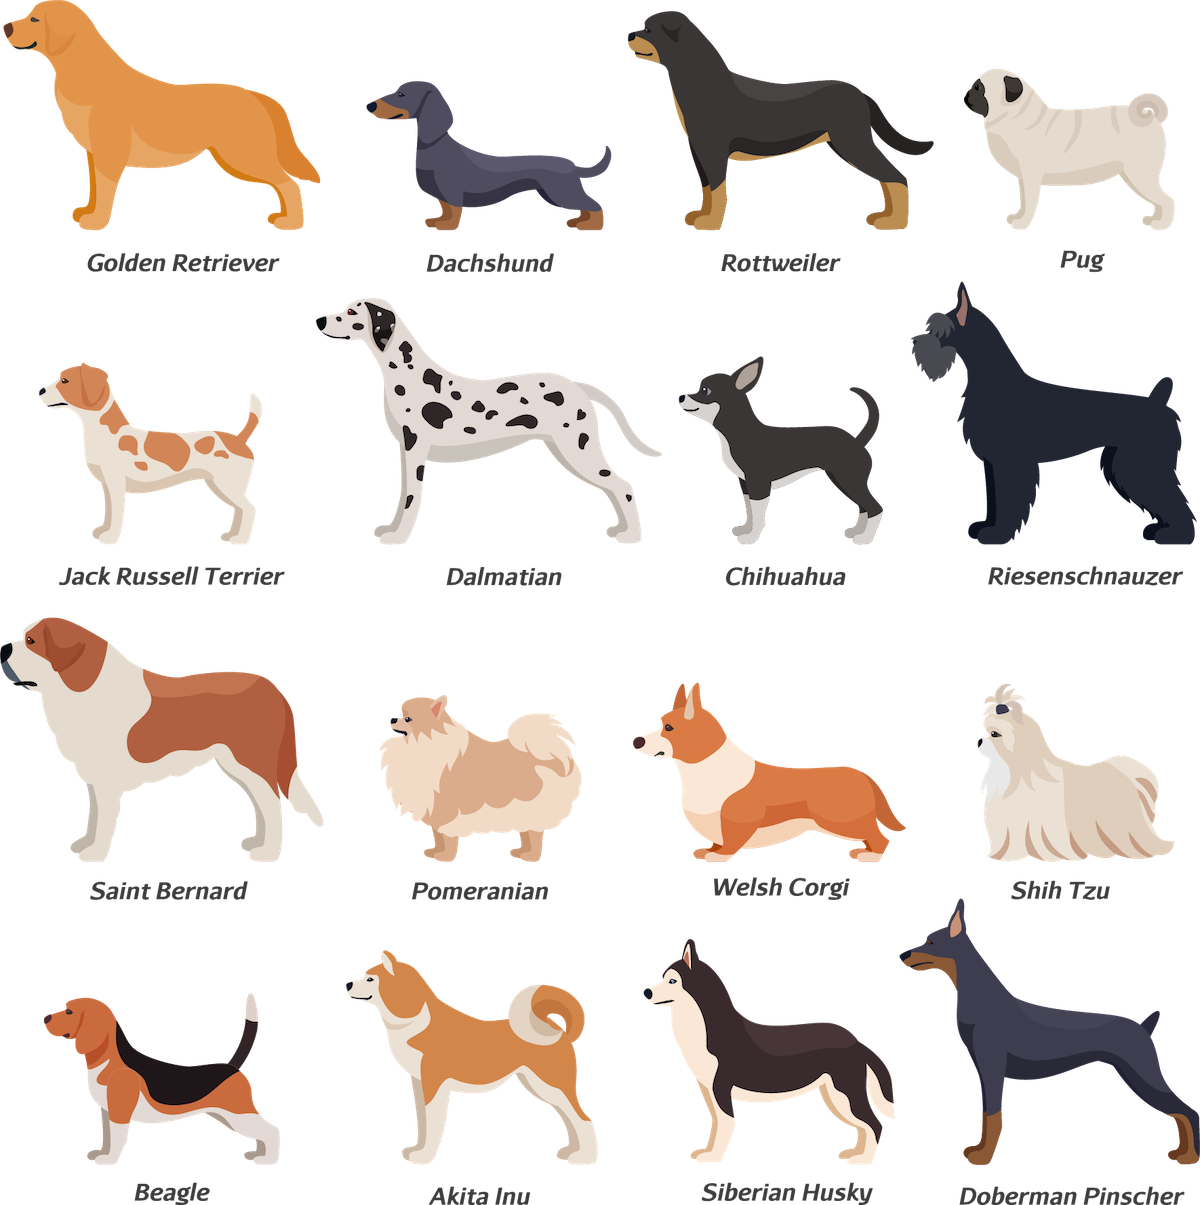 Continental clip breed. Most popular dog breeds